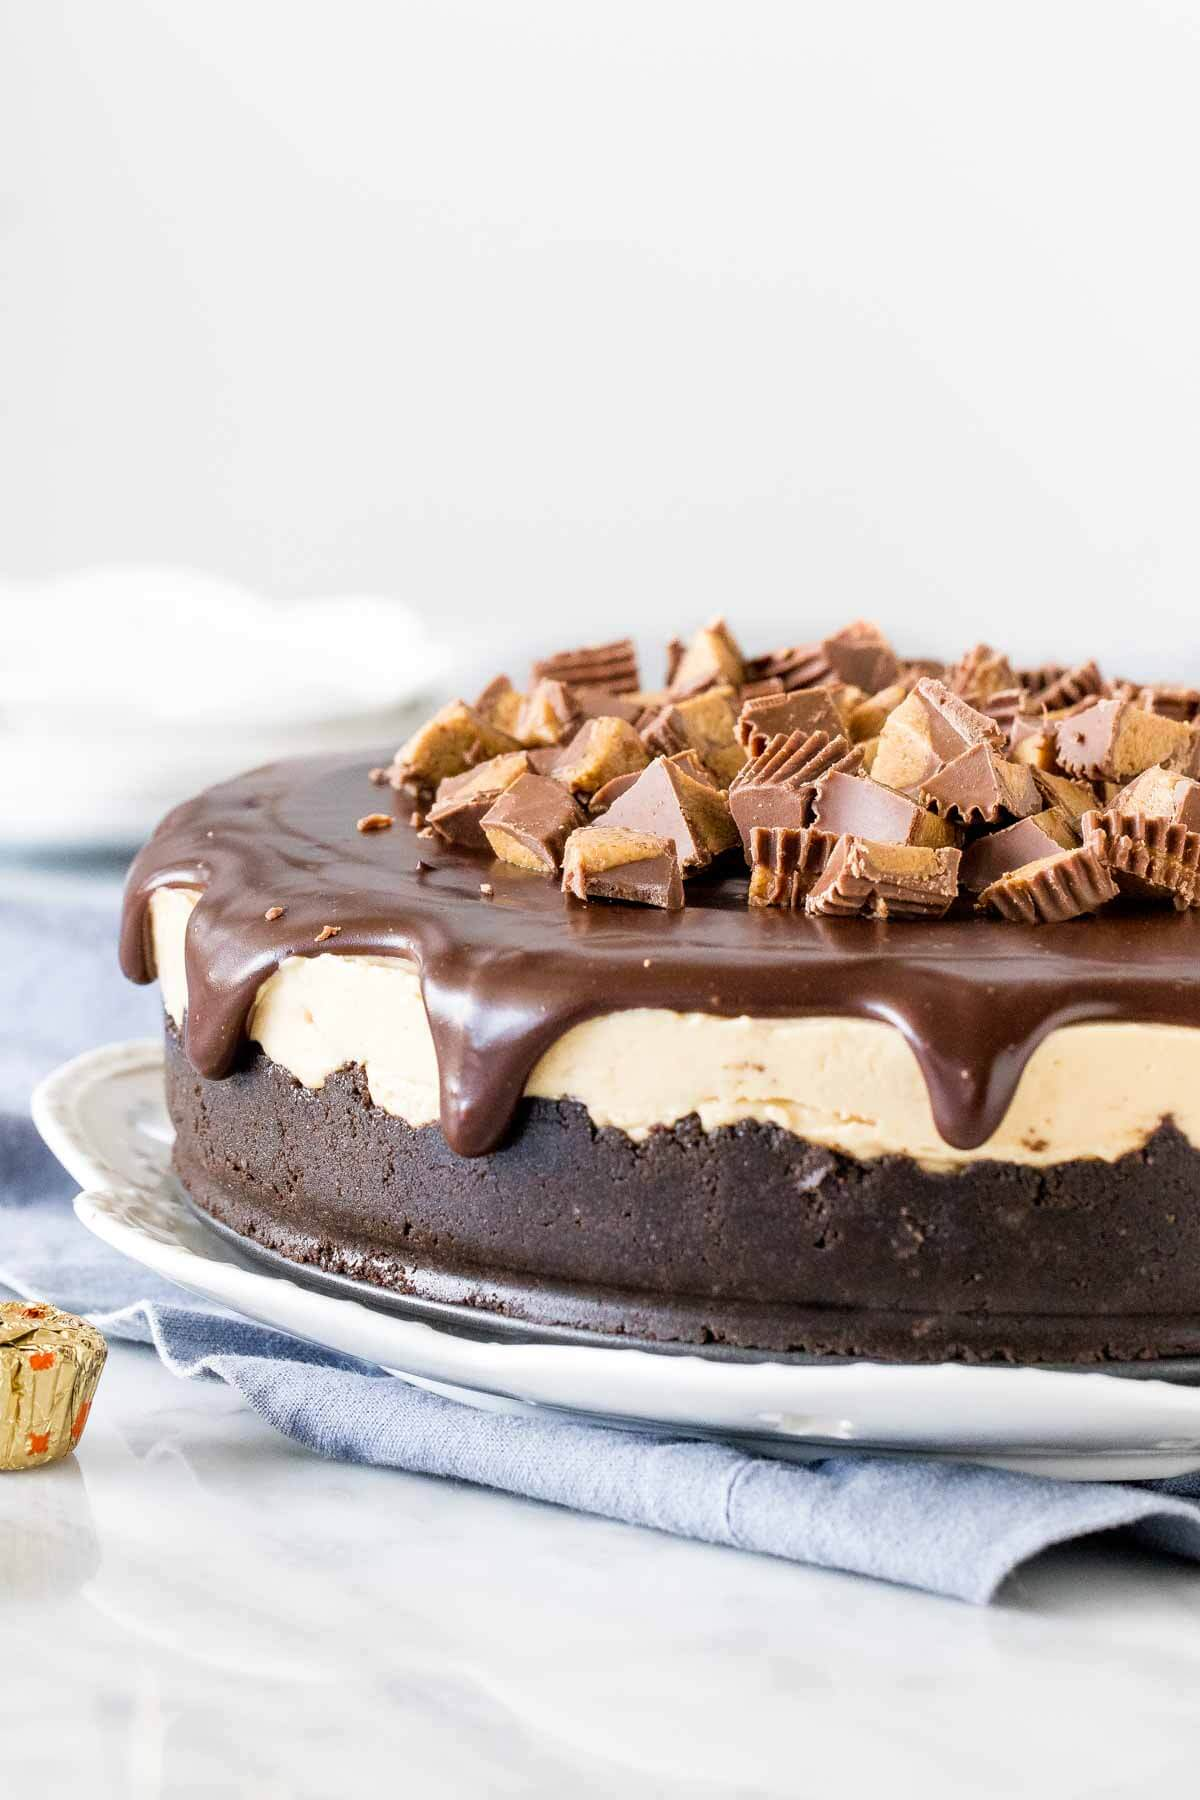 Peanut butter cheesecake with chocolate topping and peanut butter cups.